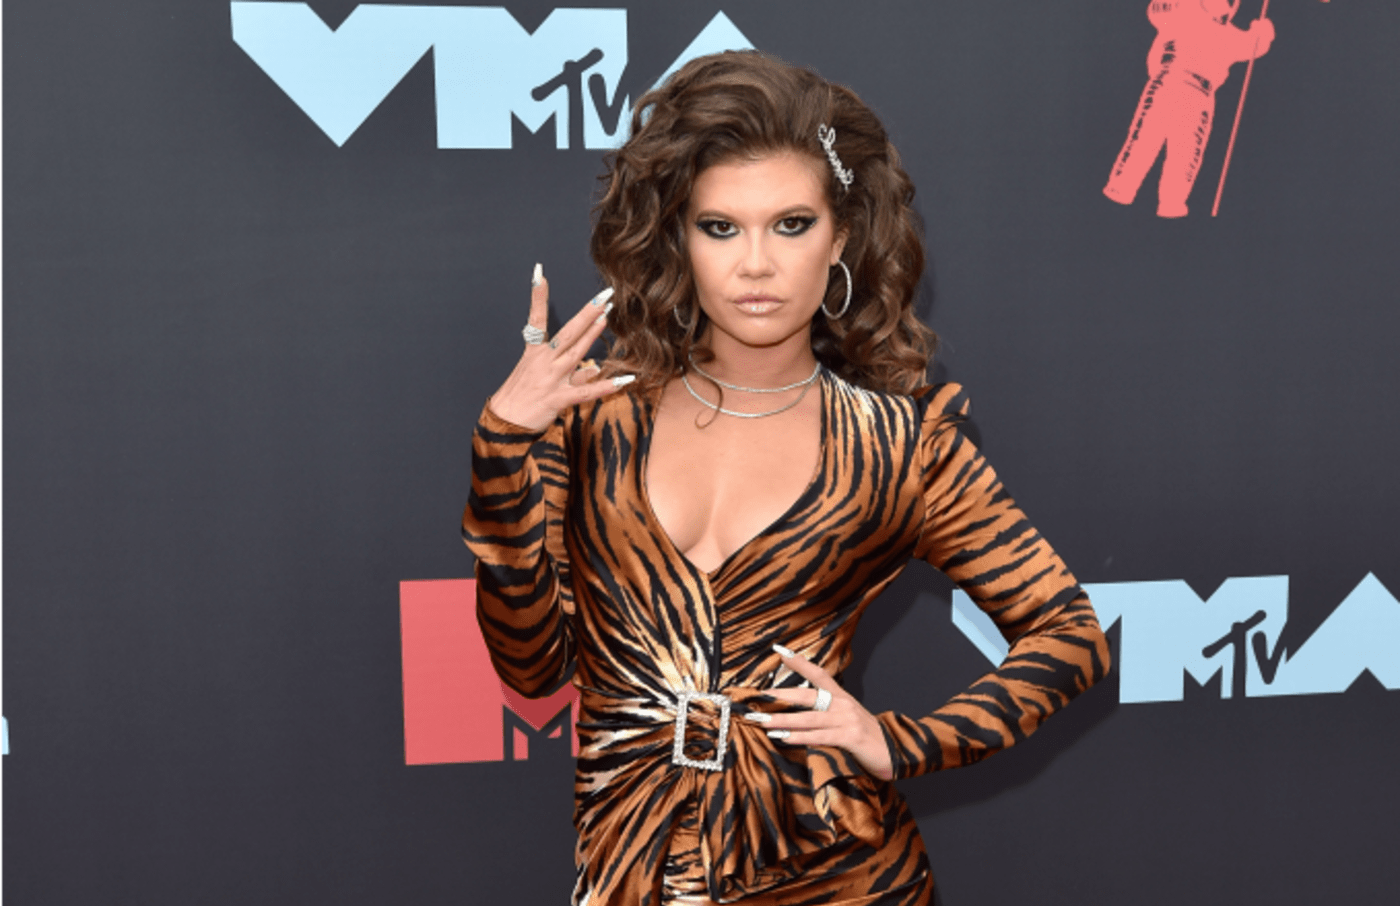 Chanel West Coast attends the 2019 MTV Video Music Awards